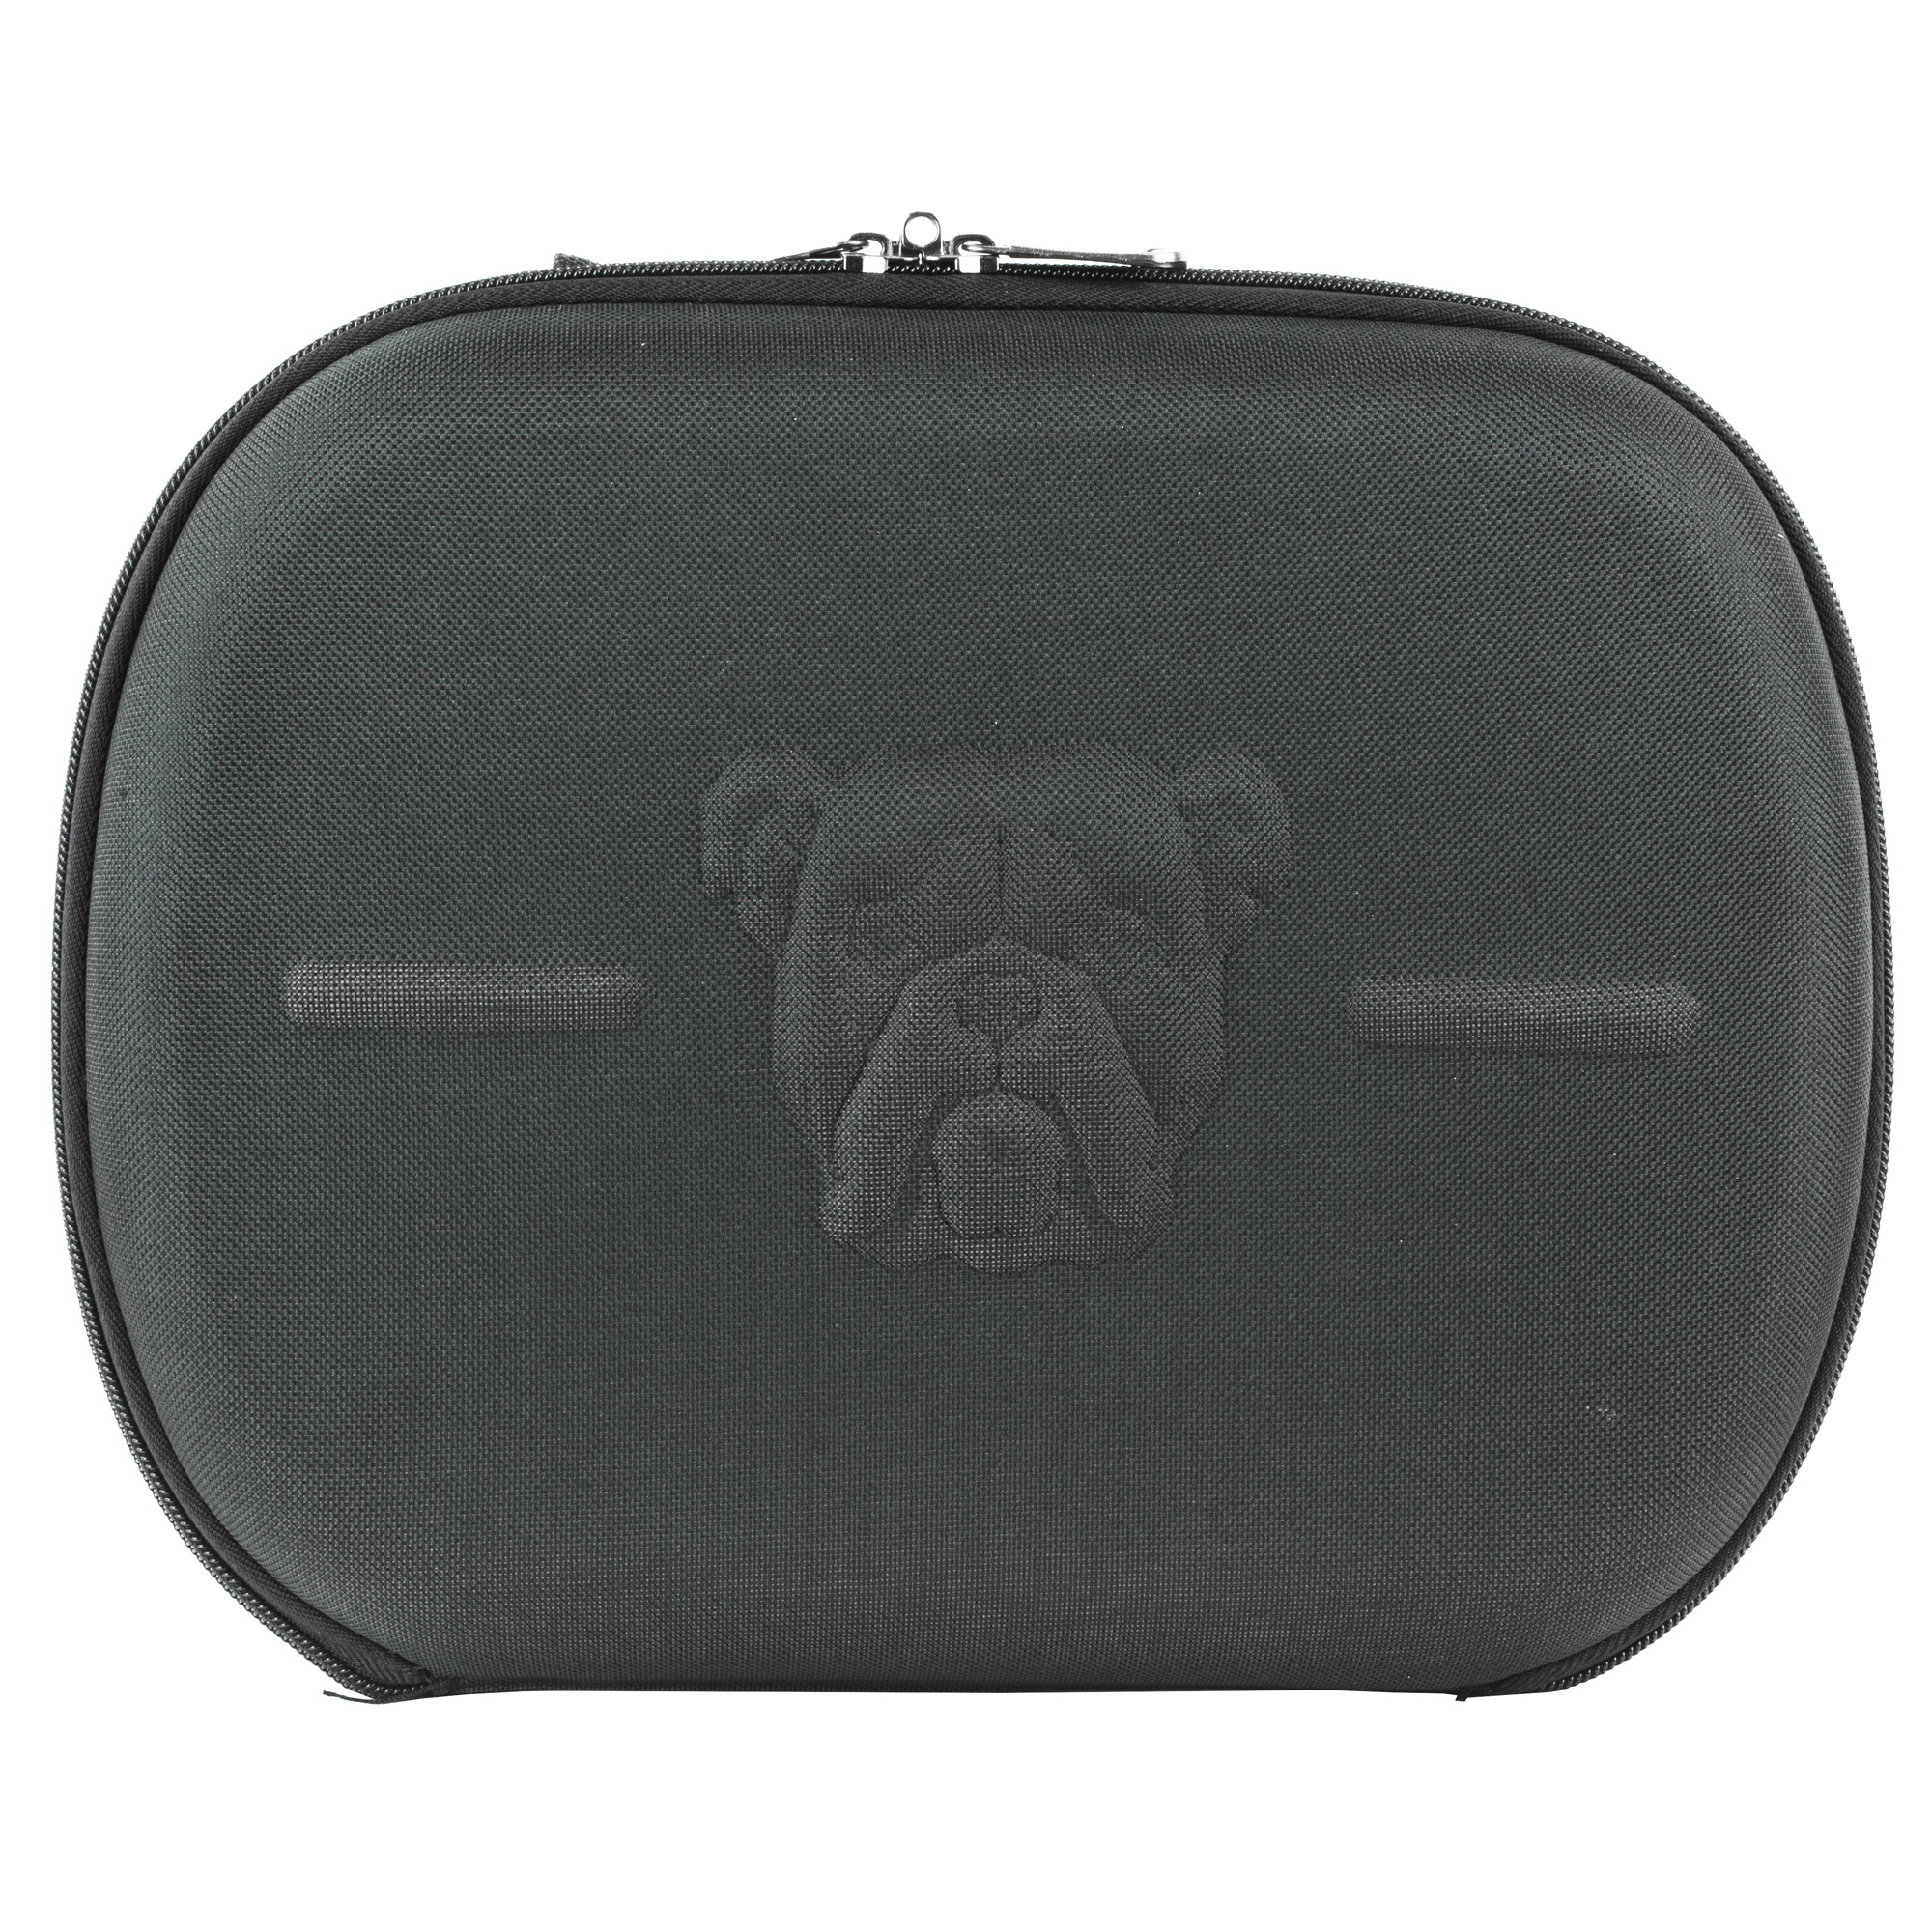 """Bulldog has been the industry leader for decades in developing innovative carrying and storage solutions for all types of weapons. With a variety of products to fit your specific needs"""" each Bulldog case is constructed from the finest hand selected materials."""